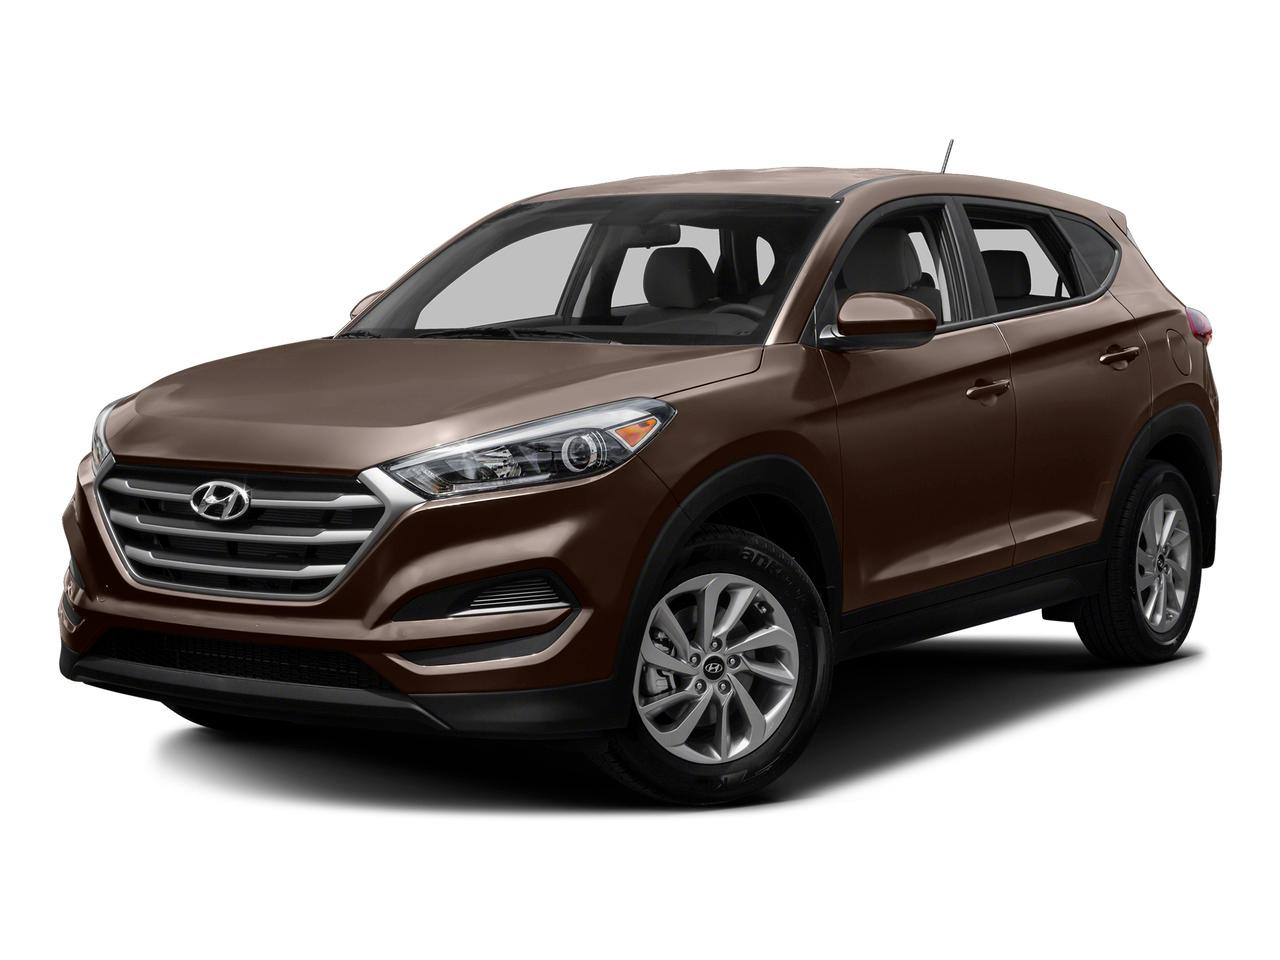 2016 Hyundai Tucson Vehicle Photo in Muncy, PA 17756